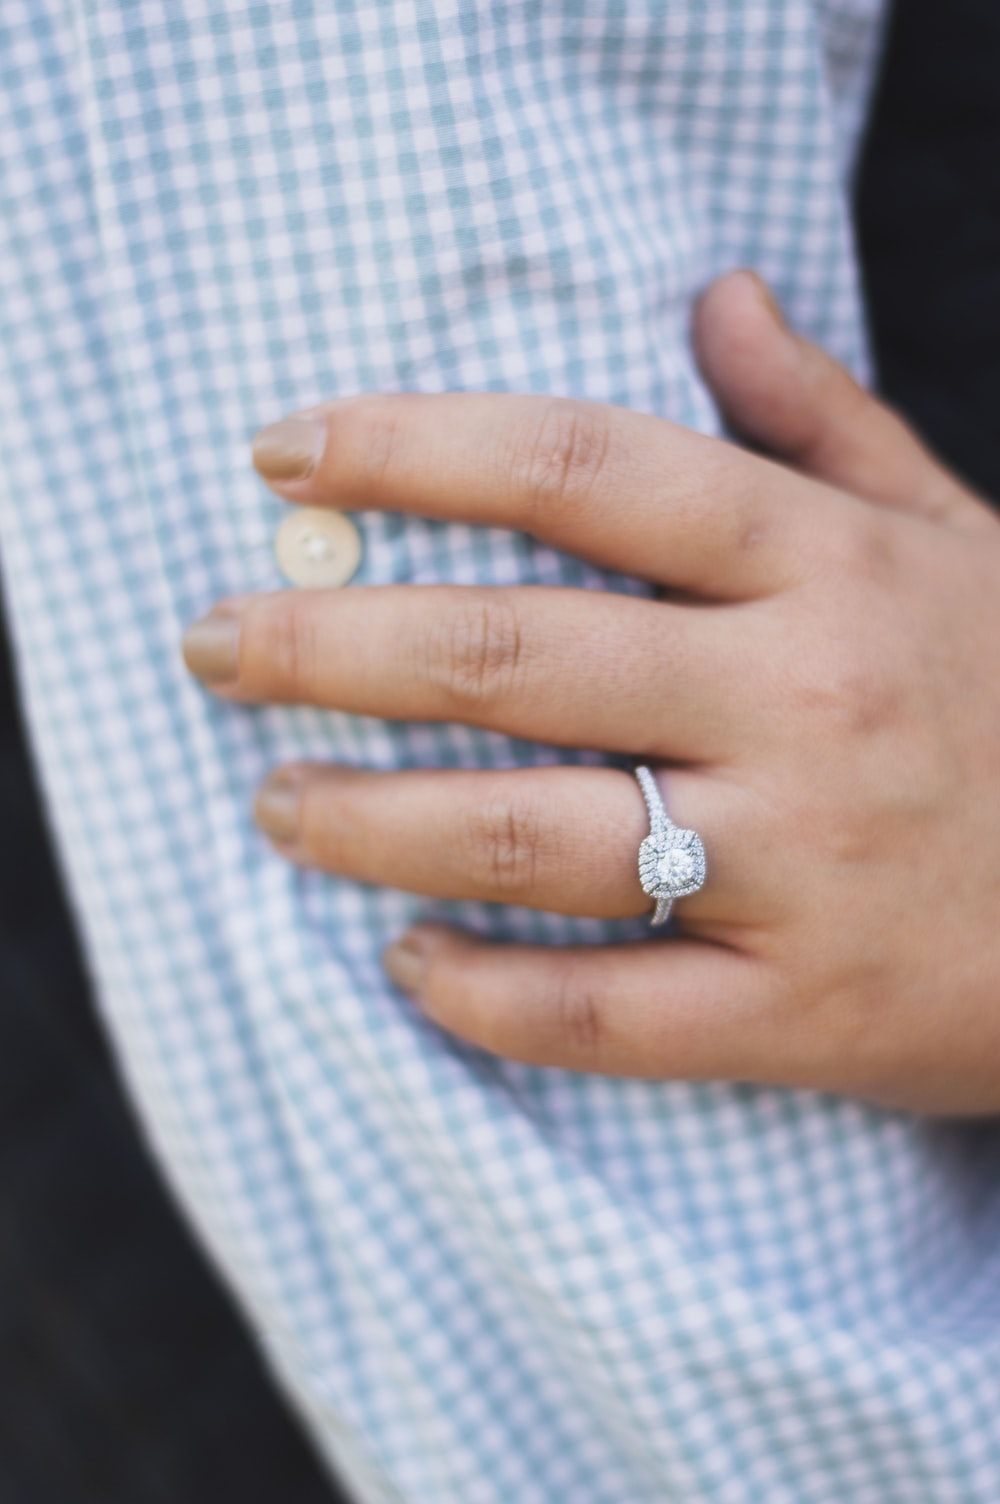 person wearing silver-colored ring with clear gemstones